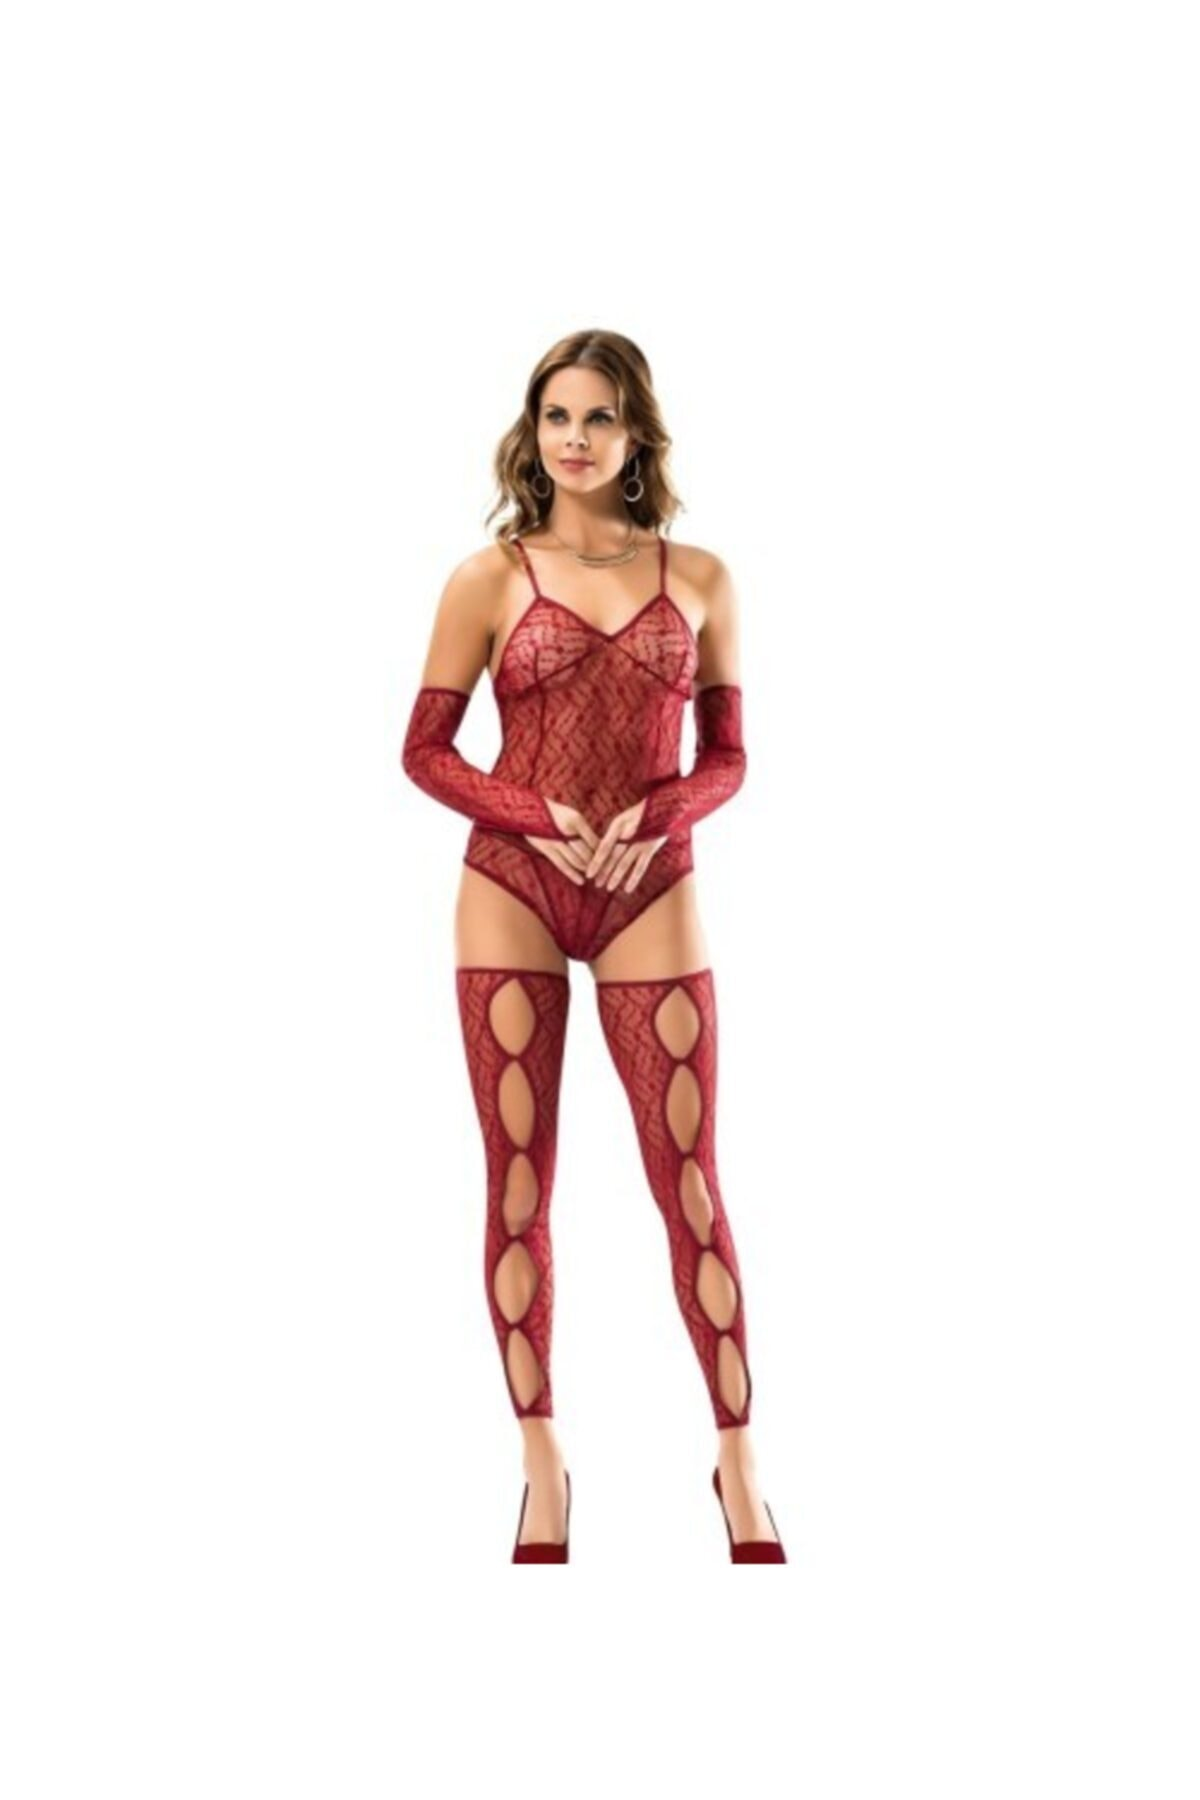 Women's Red Fancy Body Stocking Nightwear Intimate Sexy lingerie erotic lingerie women underwear Panties